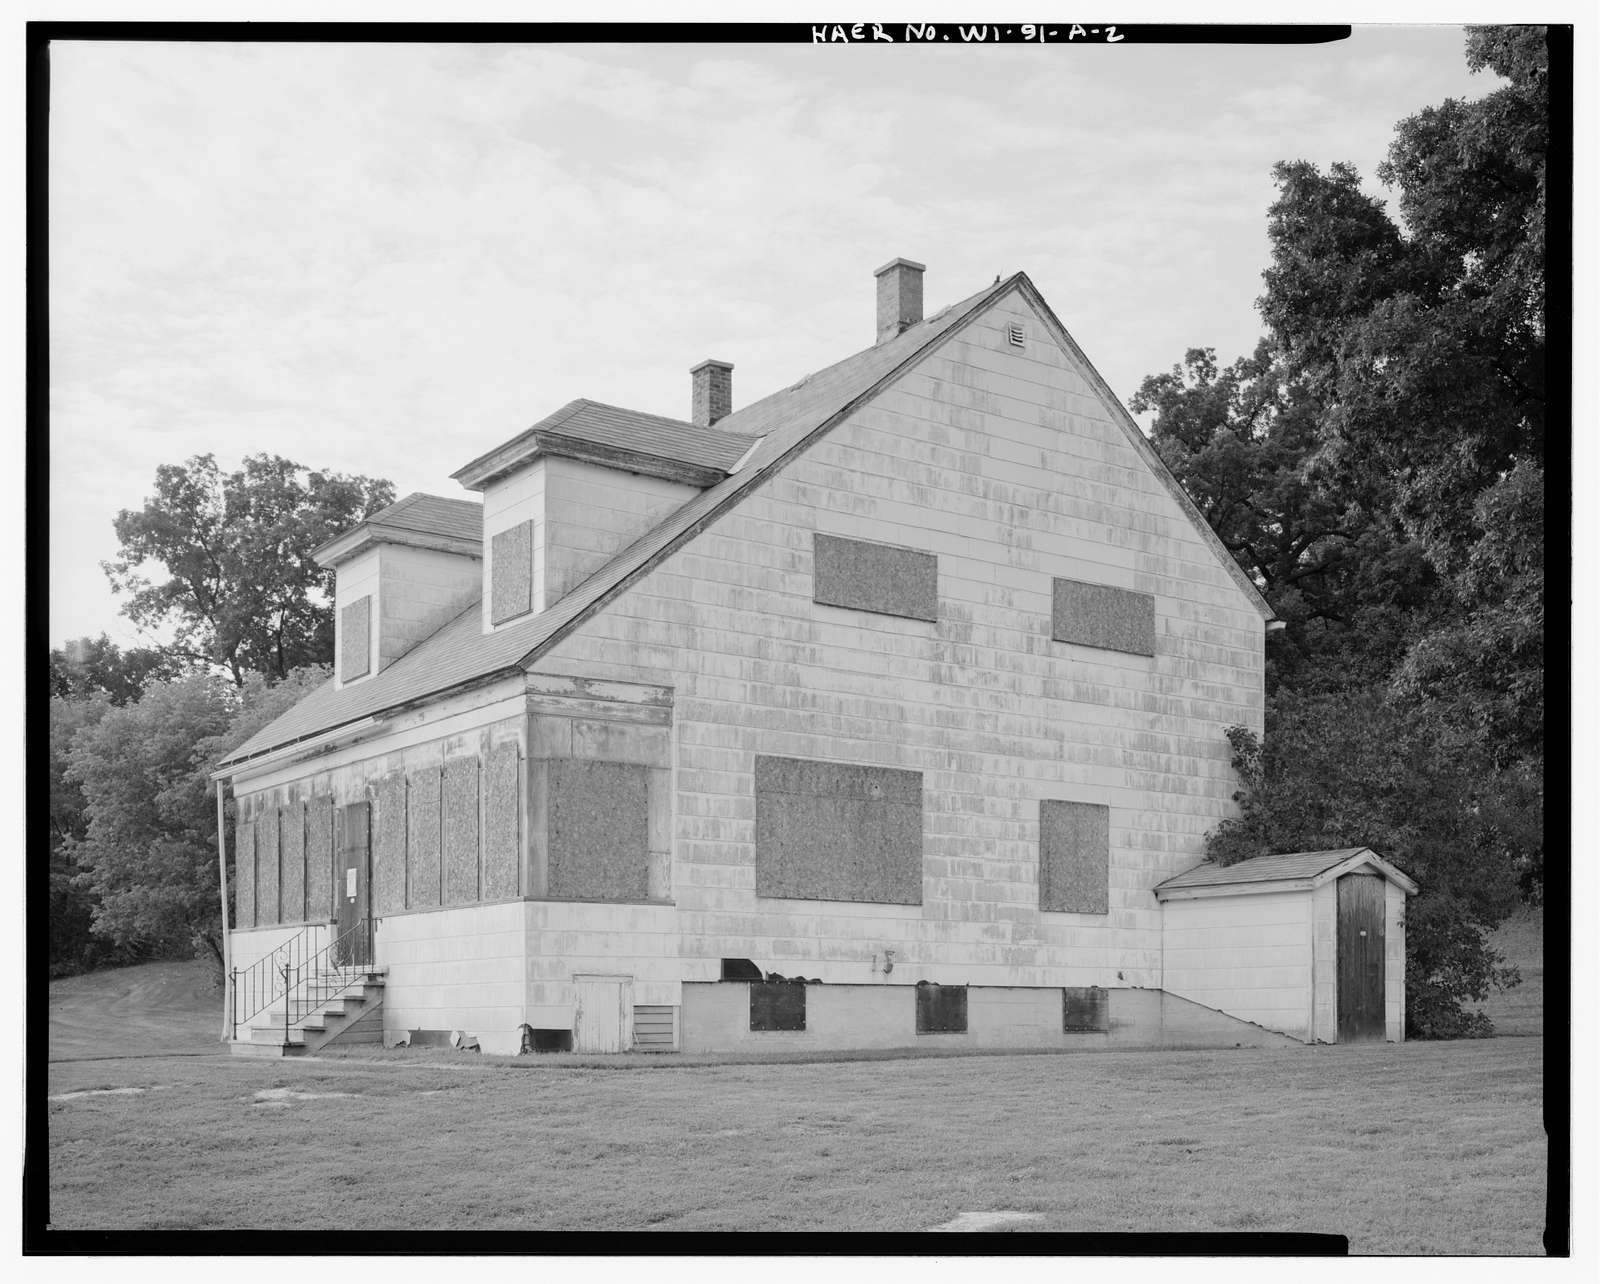 Rapide Croche Lock & Dam, Lockkeeper's Residence, Approximately 115 feet north of lock, Wrightstown, Brown County, WI